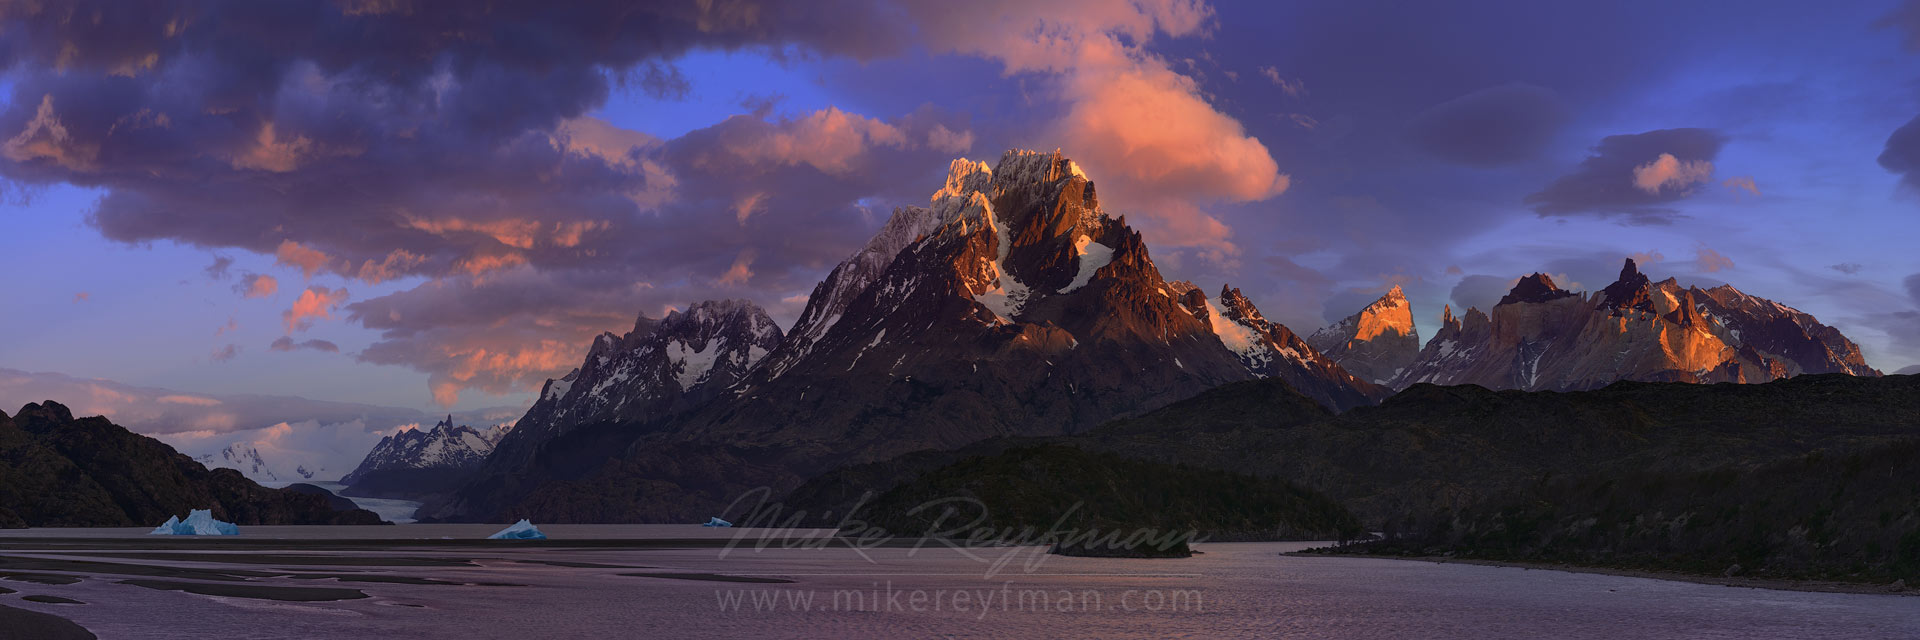 Windy sunrise over Cordillera del Paine. Panoramic view of Lago Grey, Cerro Paine Grande and Cuernos del Paine. Torres del Paine National Park, Patagonia, Chile. - Torres-Del-Paine-National-Park-Patagonia-Chile - Mike Reyfman Photography